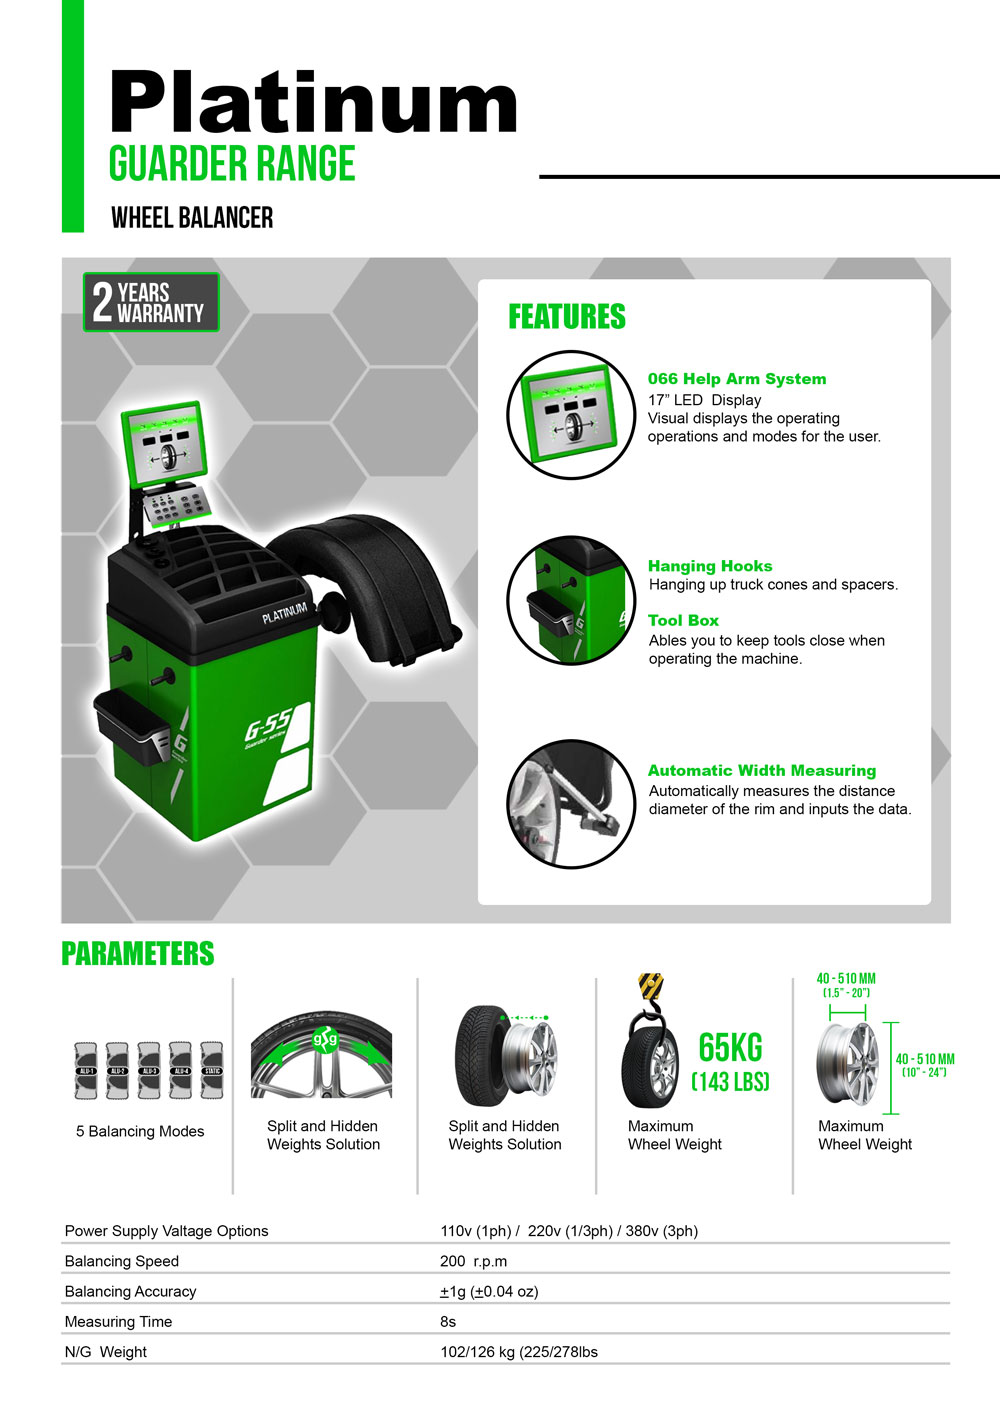 information flyer for platinum g55 fully automatic wheel balancer